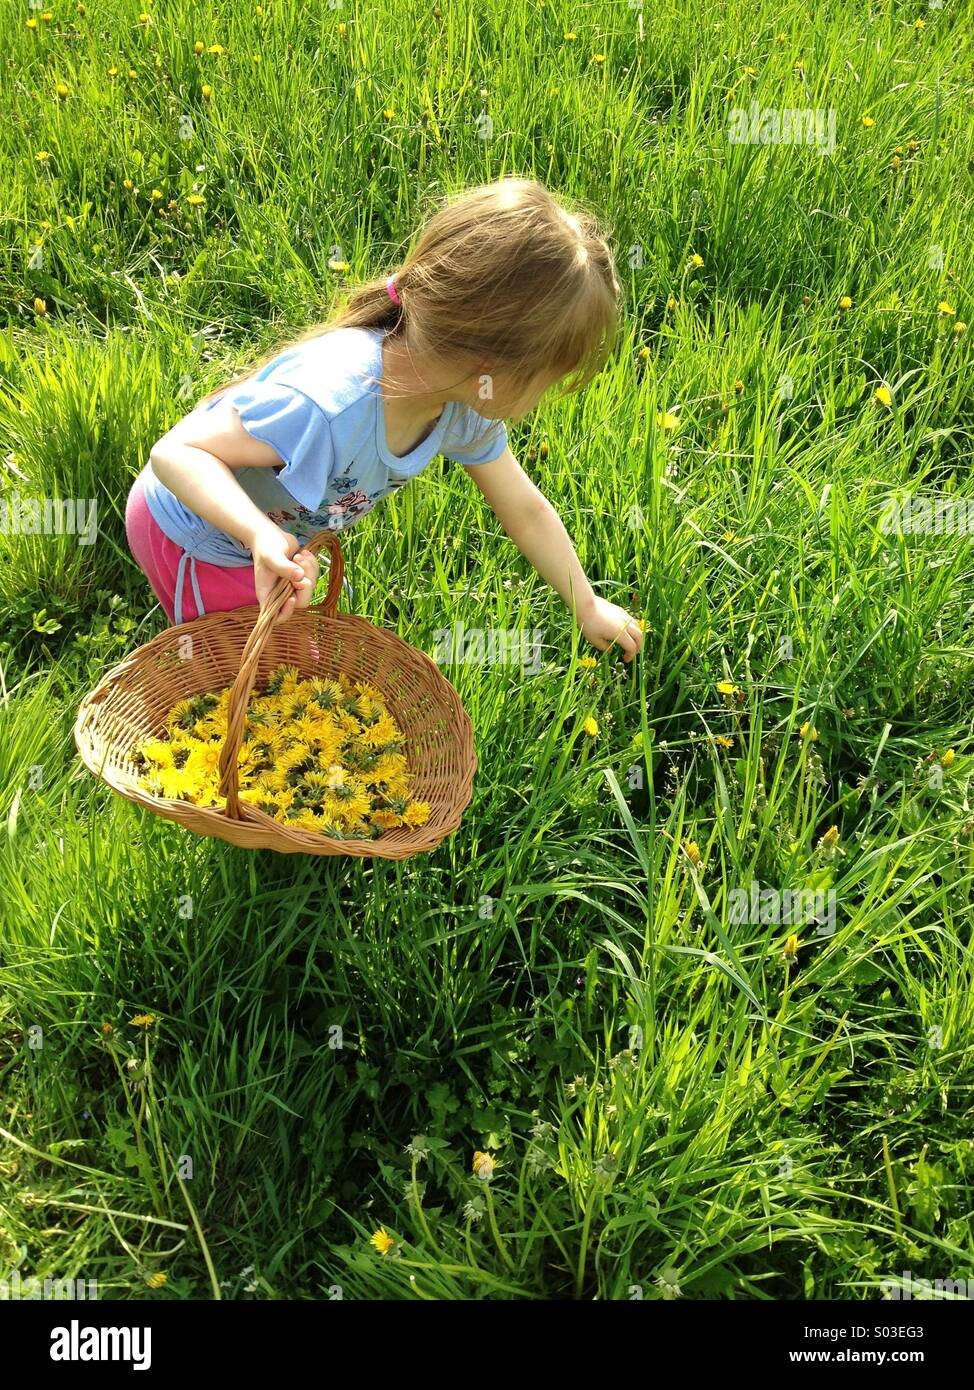 Little girl picking up dandelion flowers to the basket - Stock Image